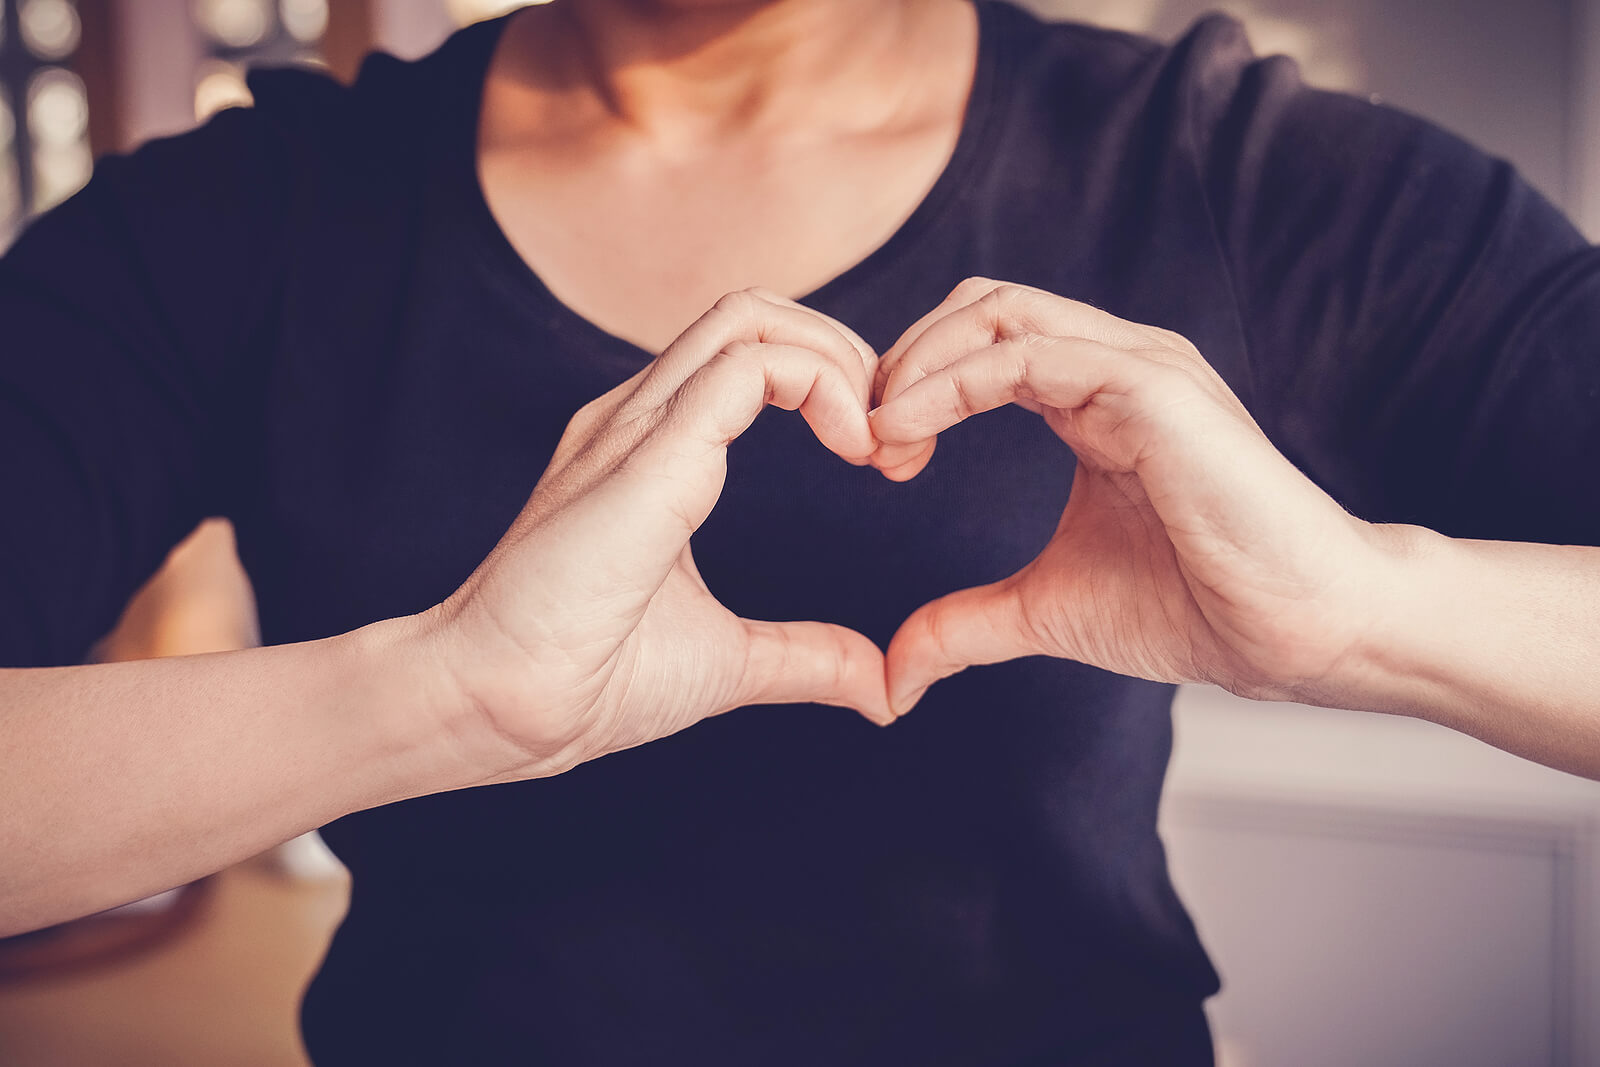 A woman making a heart with her hands infront of her chest, wearing a black t-shirt